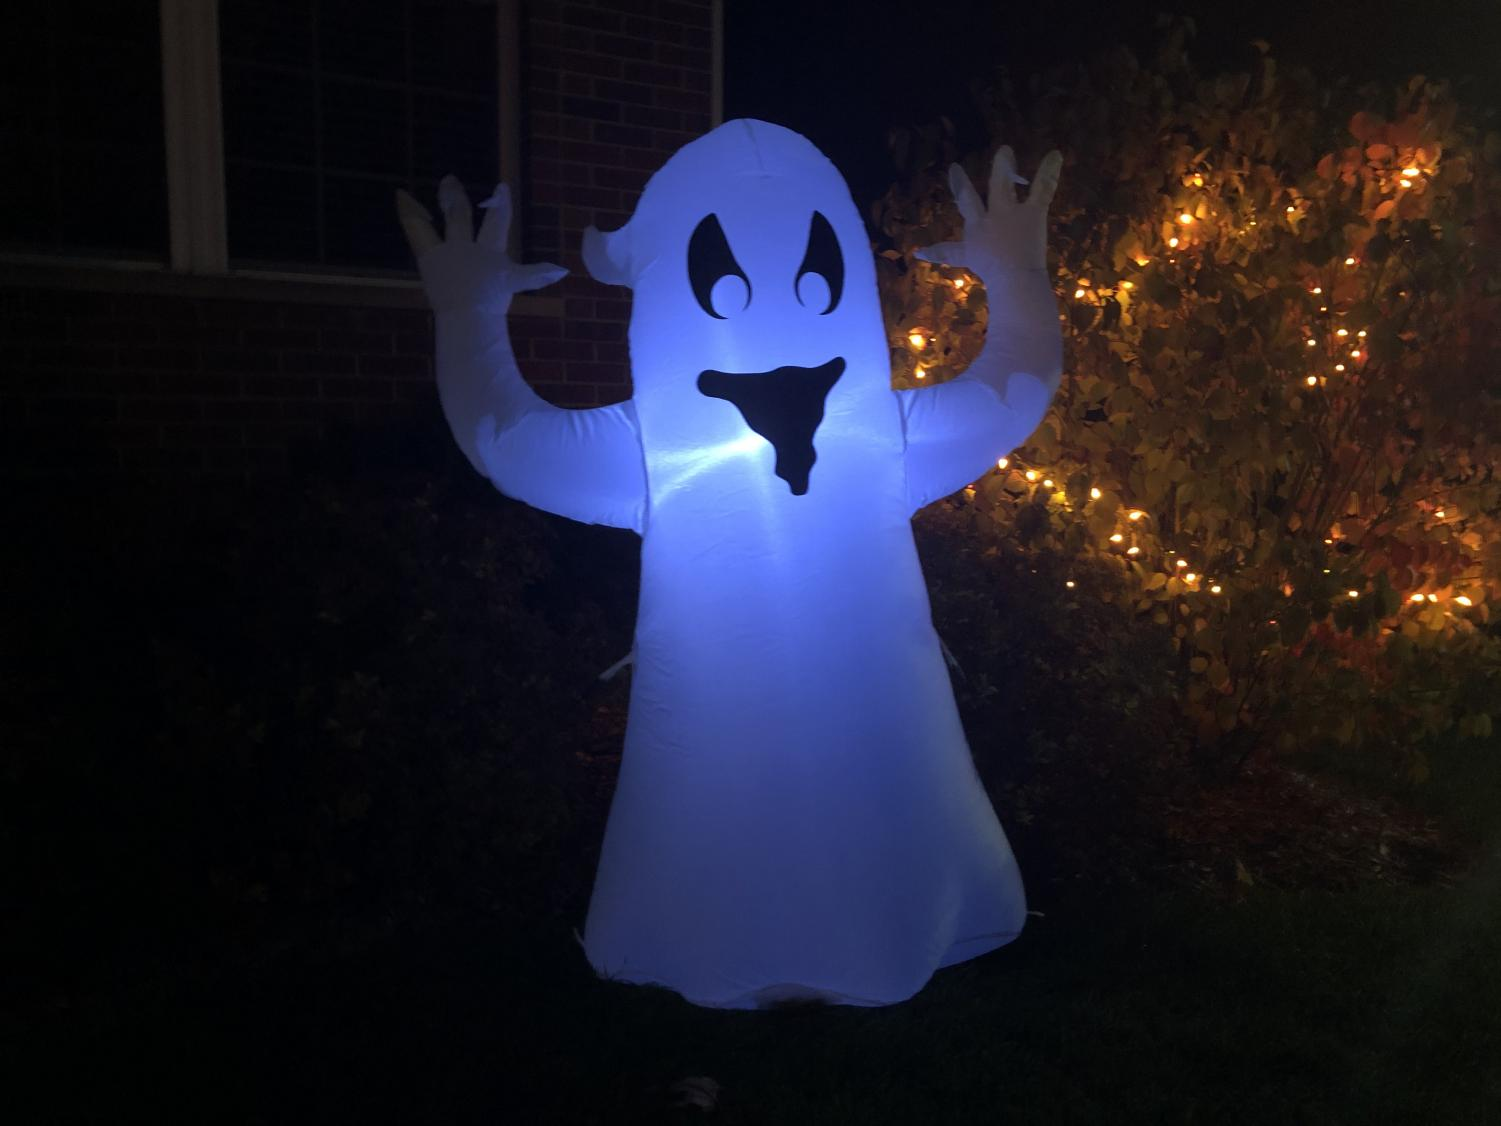 Ghosts are a common decoration for houses in preparation for Halloween. We as ghosts do not know how we should feel about these caricatures, as we do not know what we look like.